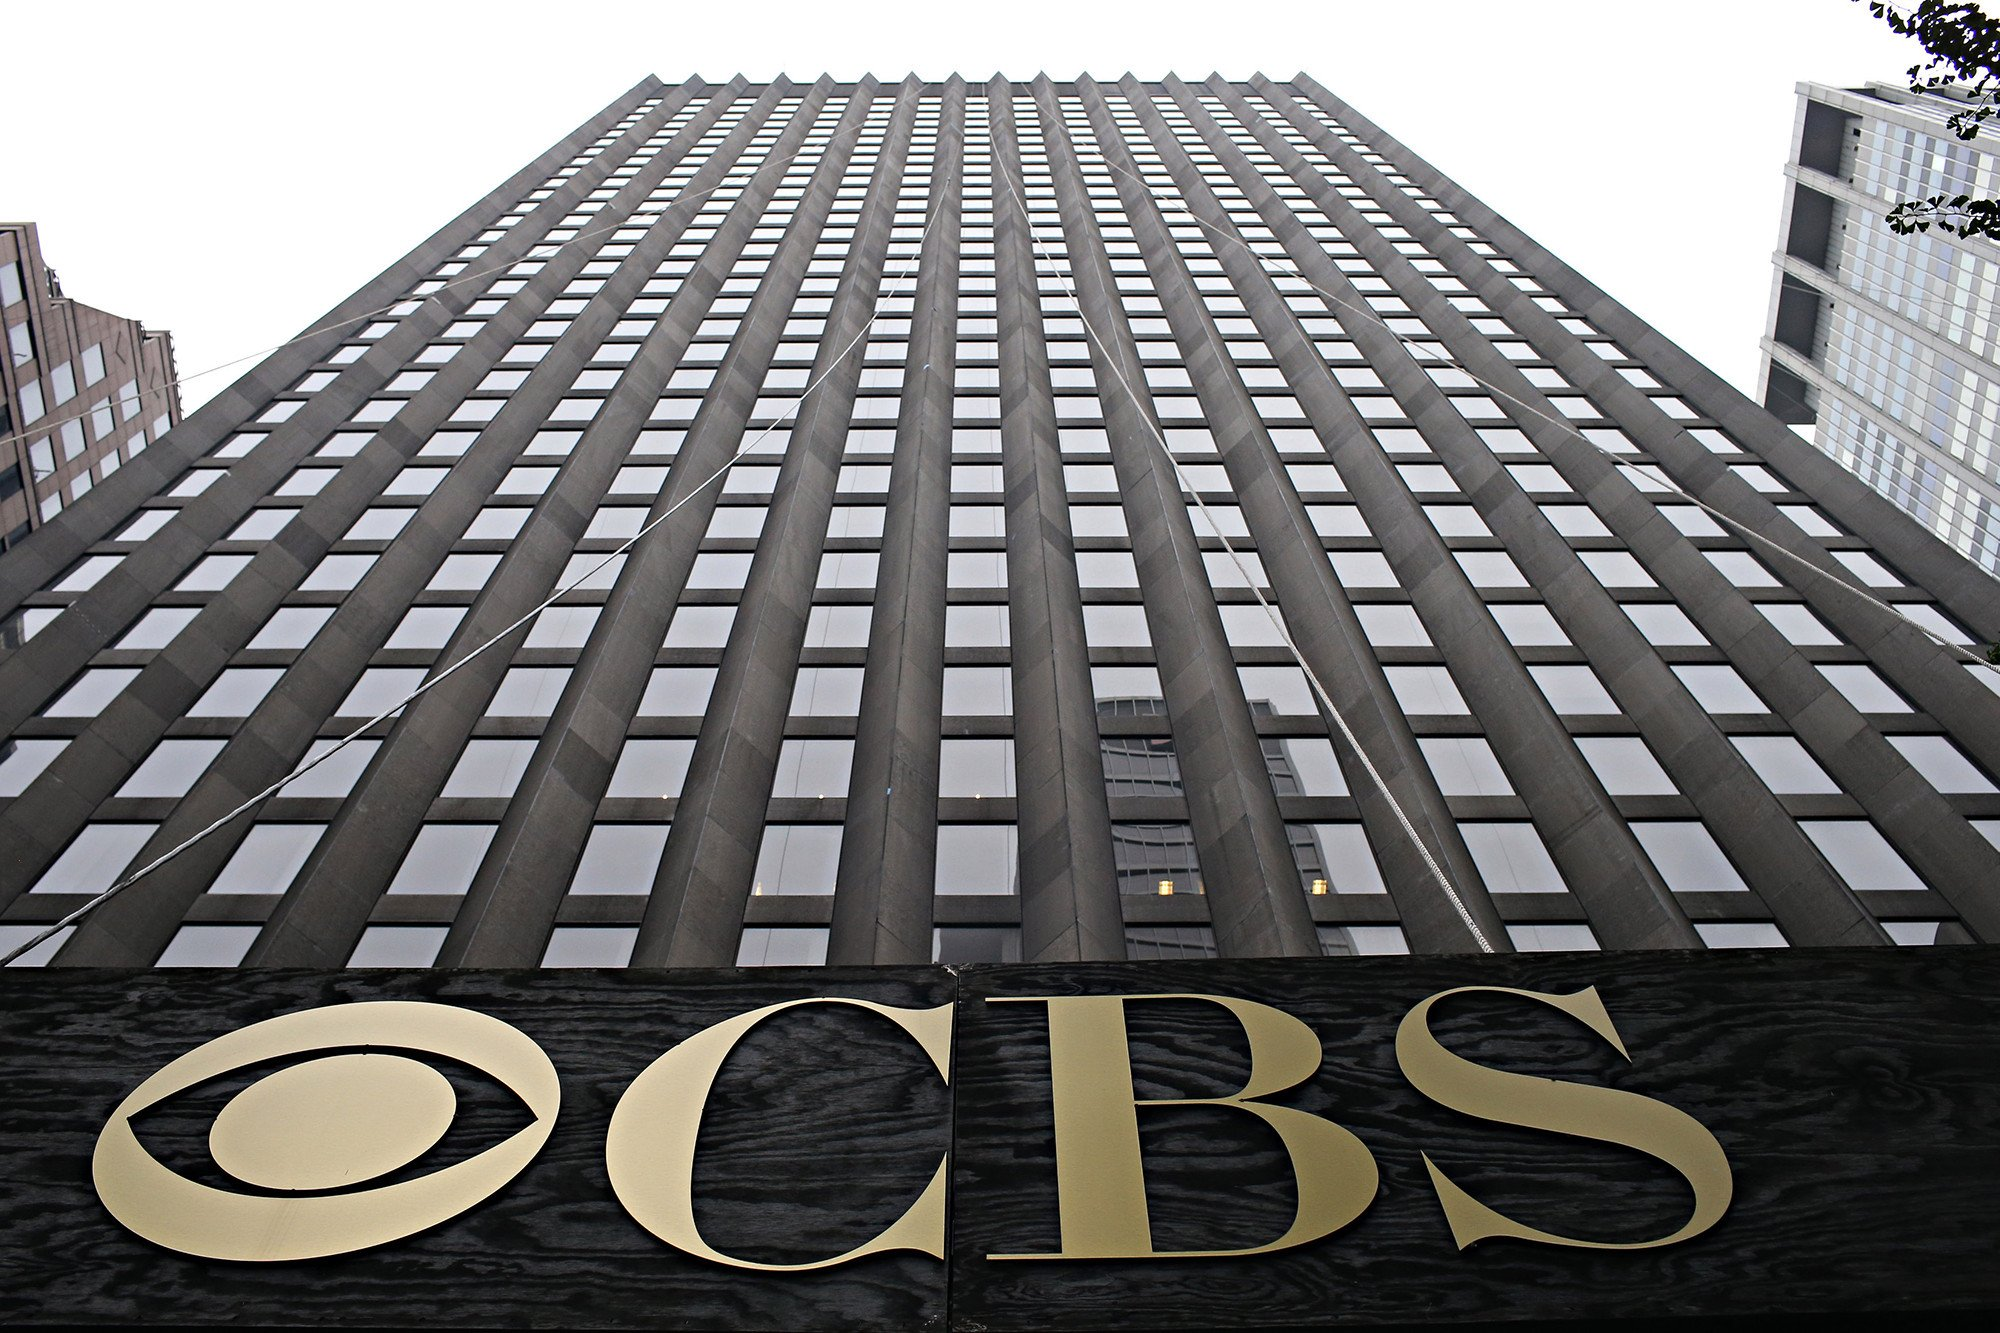 CBS, Viacom form committees to explore merger